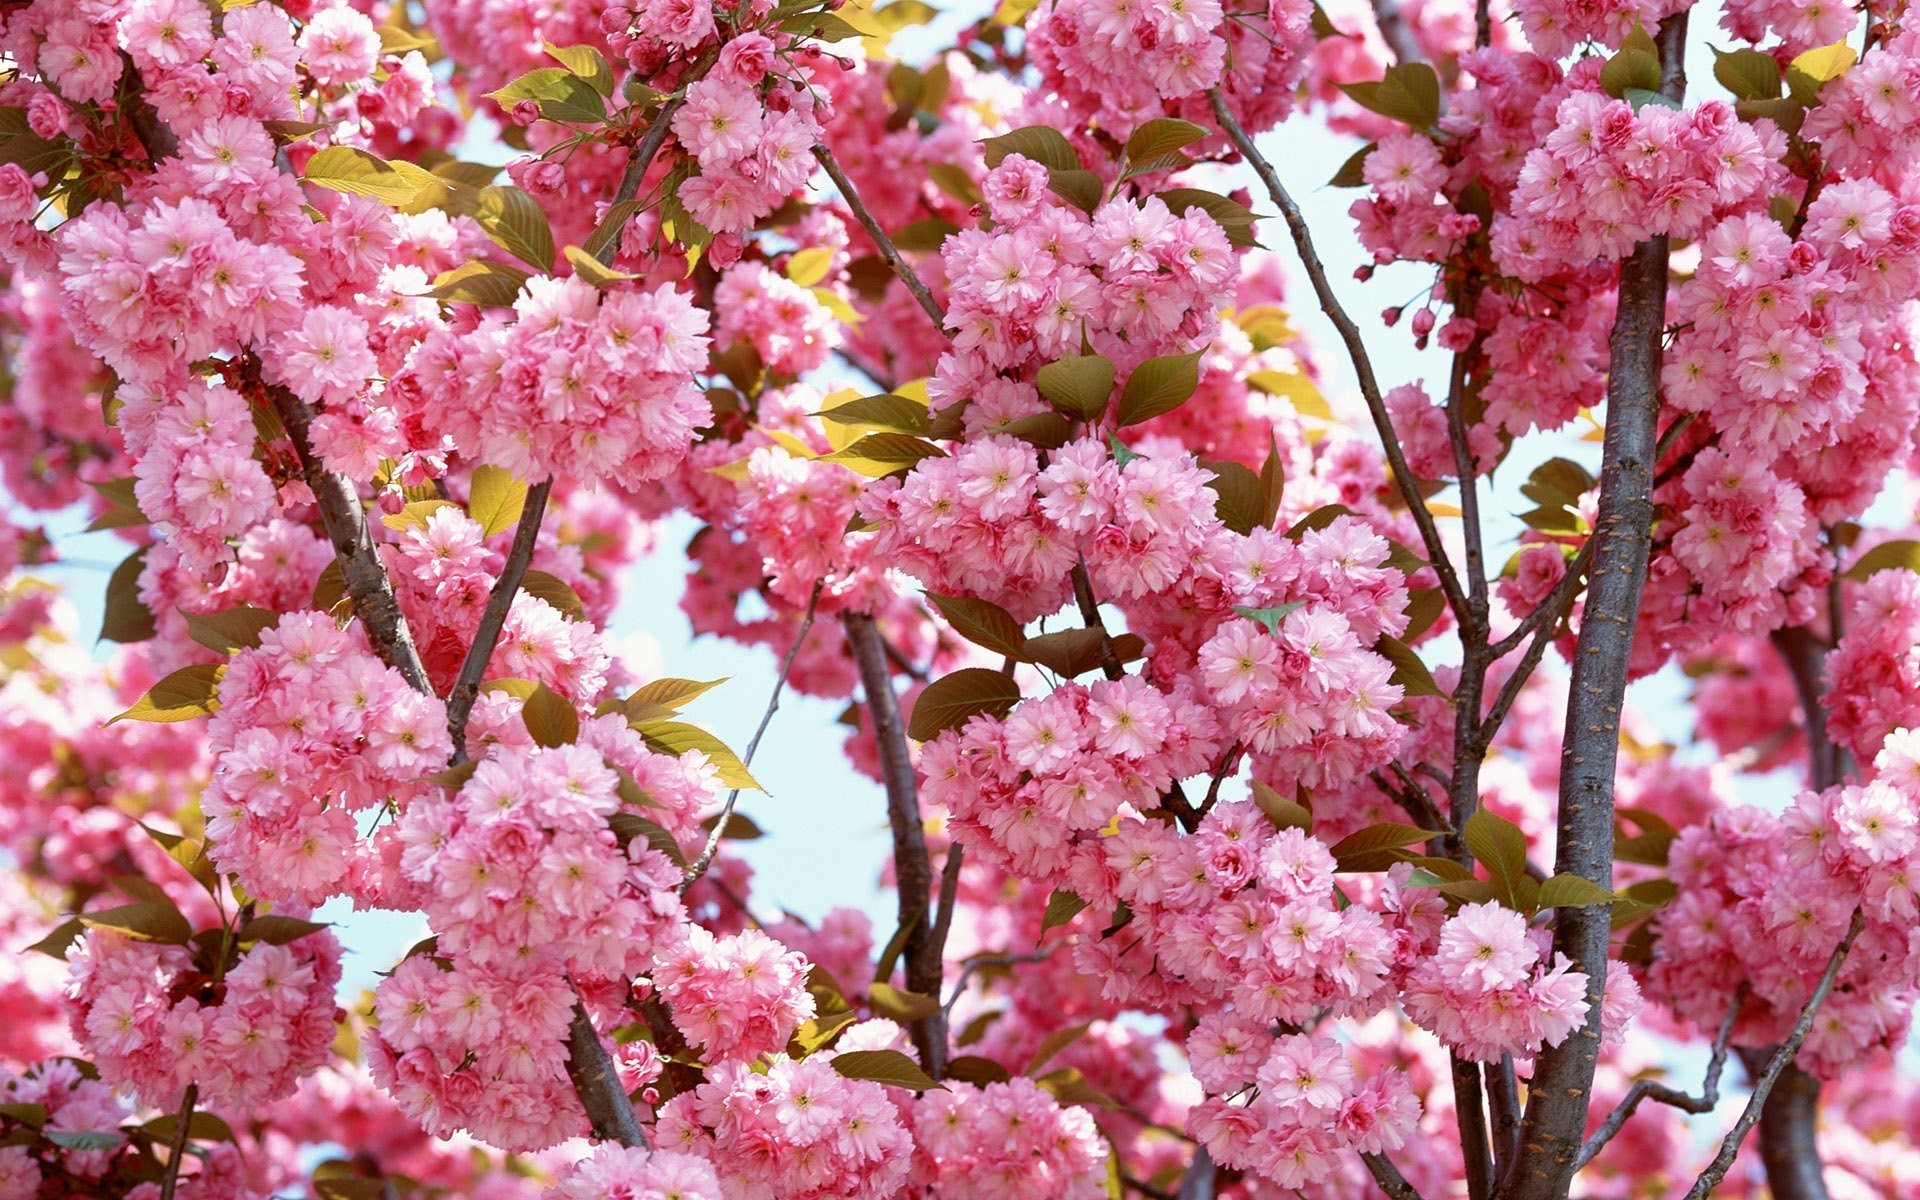 HD Wallpaper and background photos of Cherry Blossom for fans of  yorkshire_rose images.